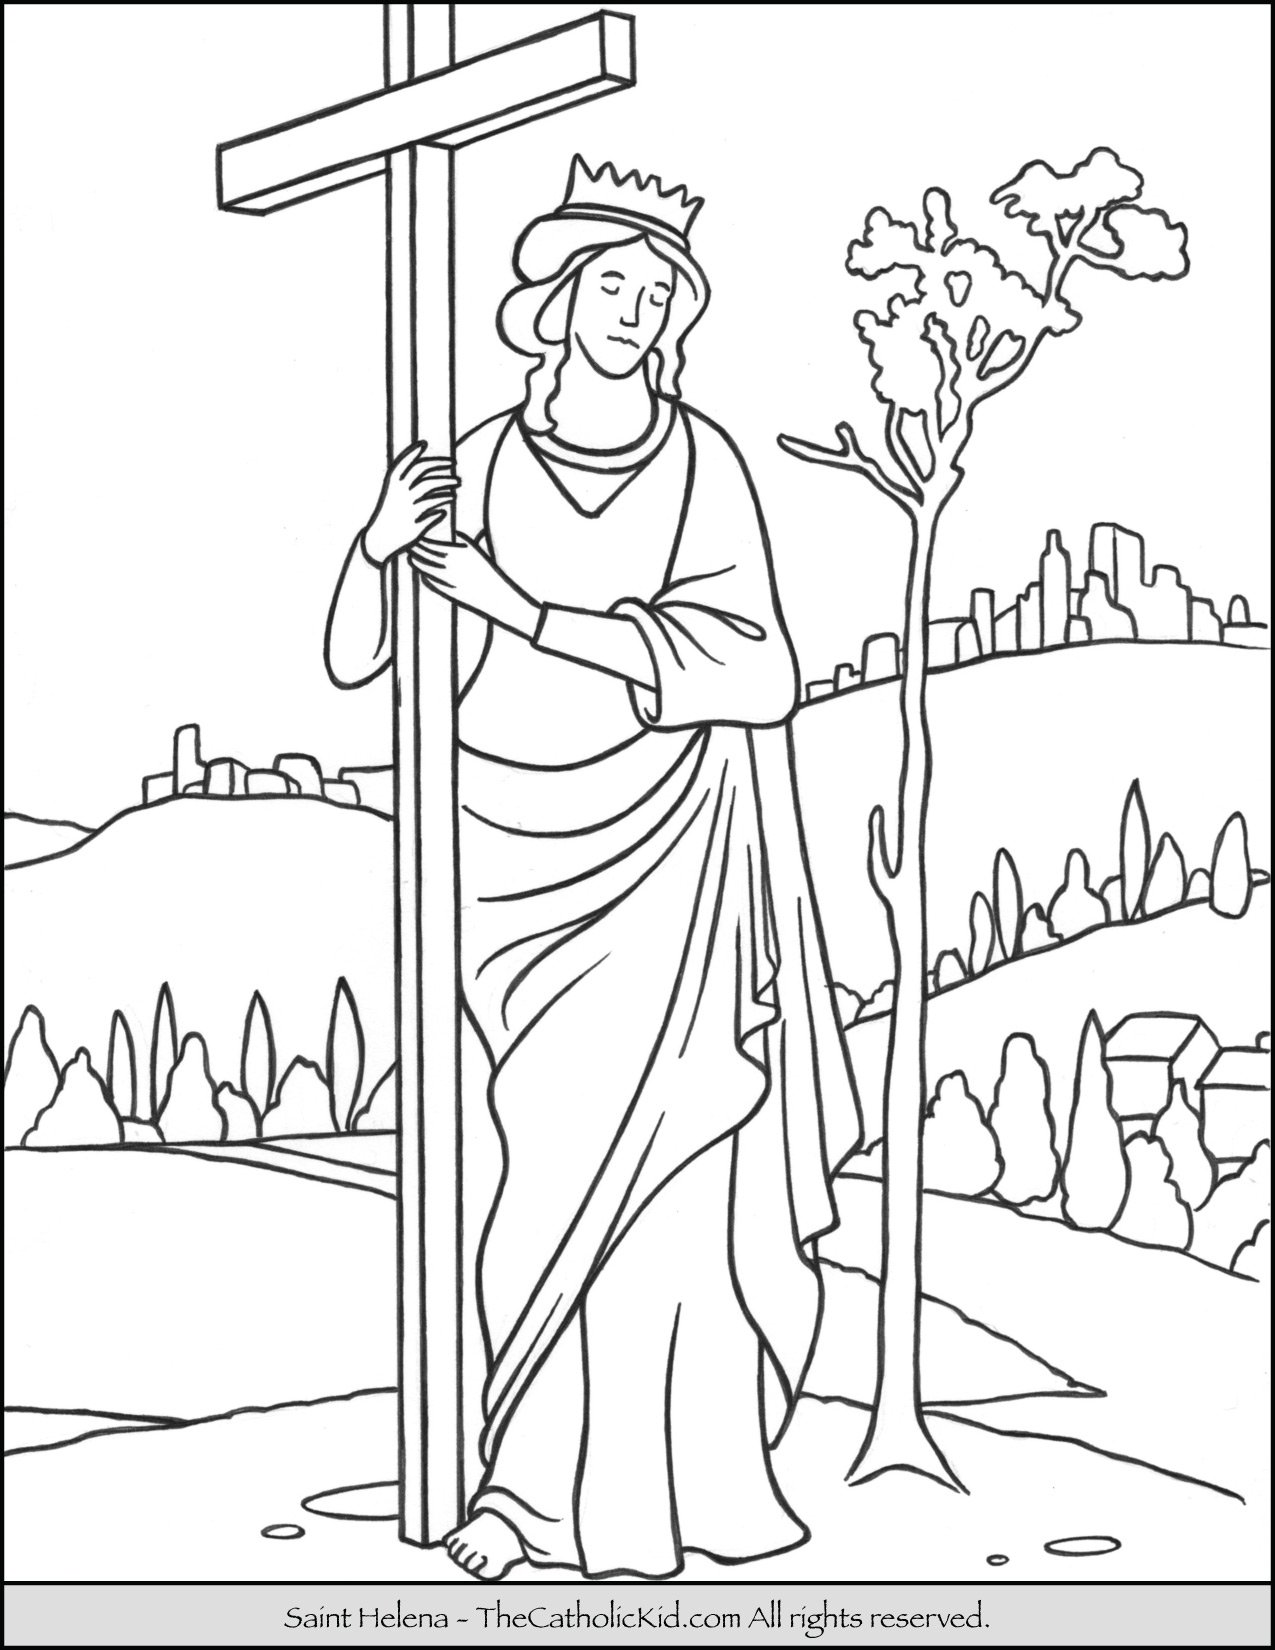 Saint Helena Coloring Page - TheCatholicKid.com